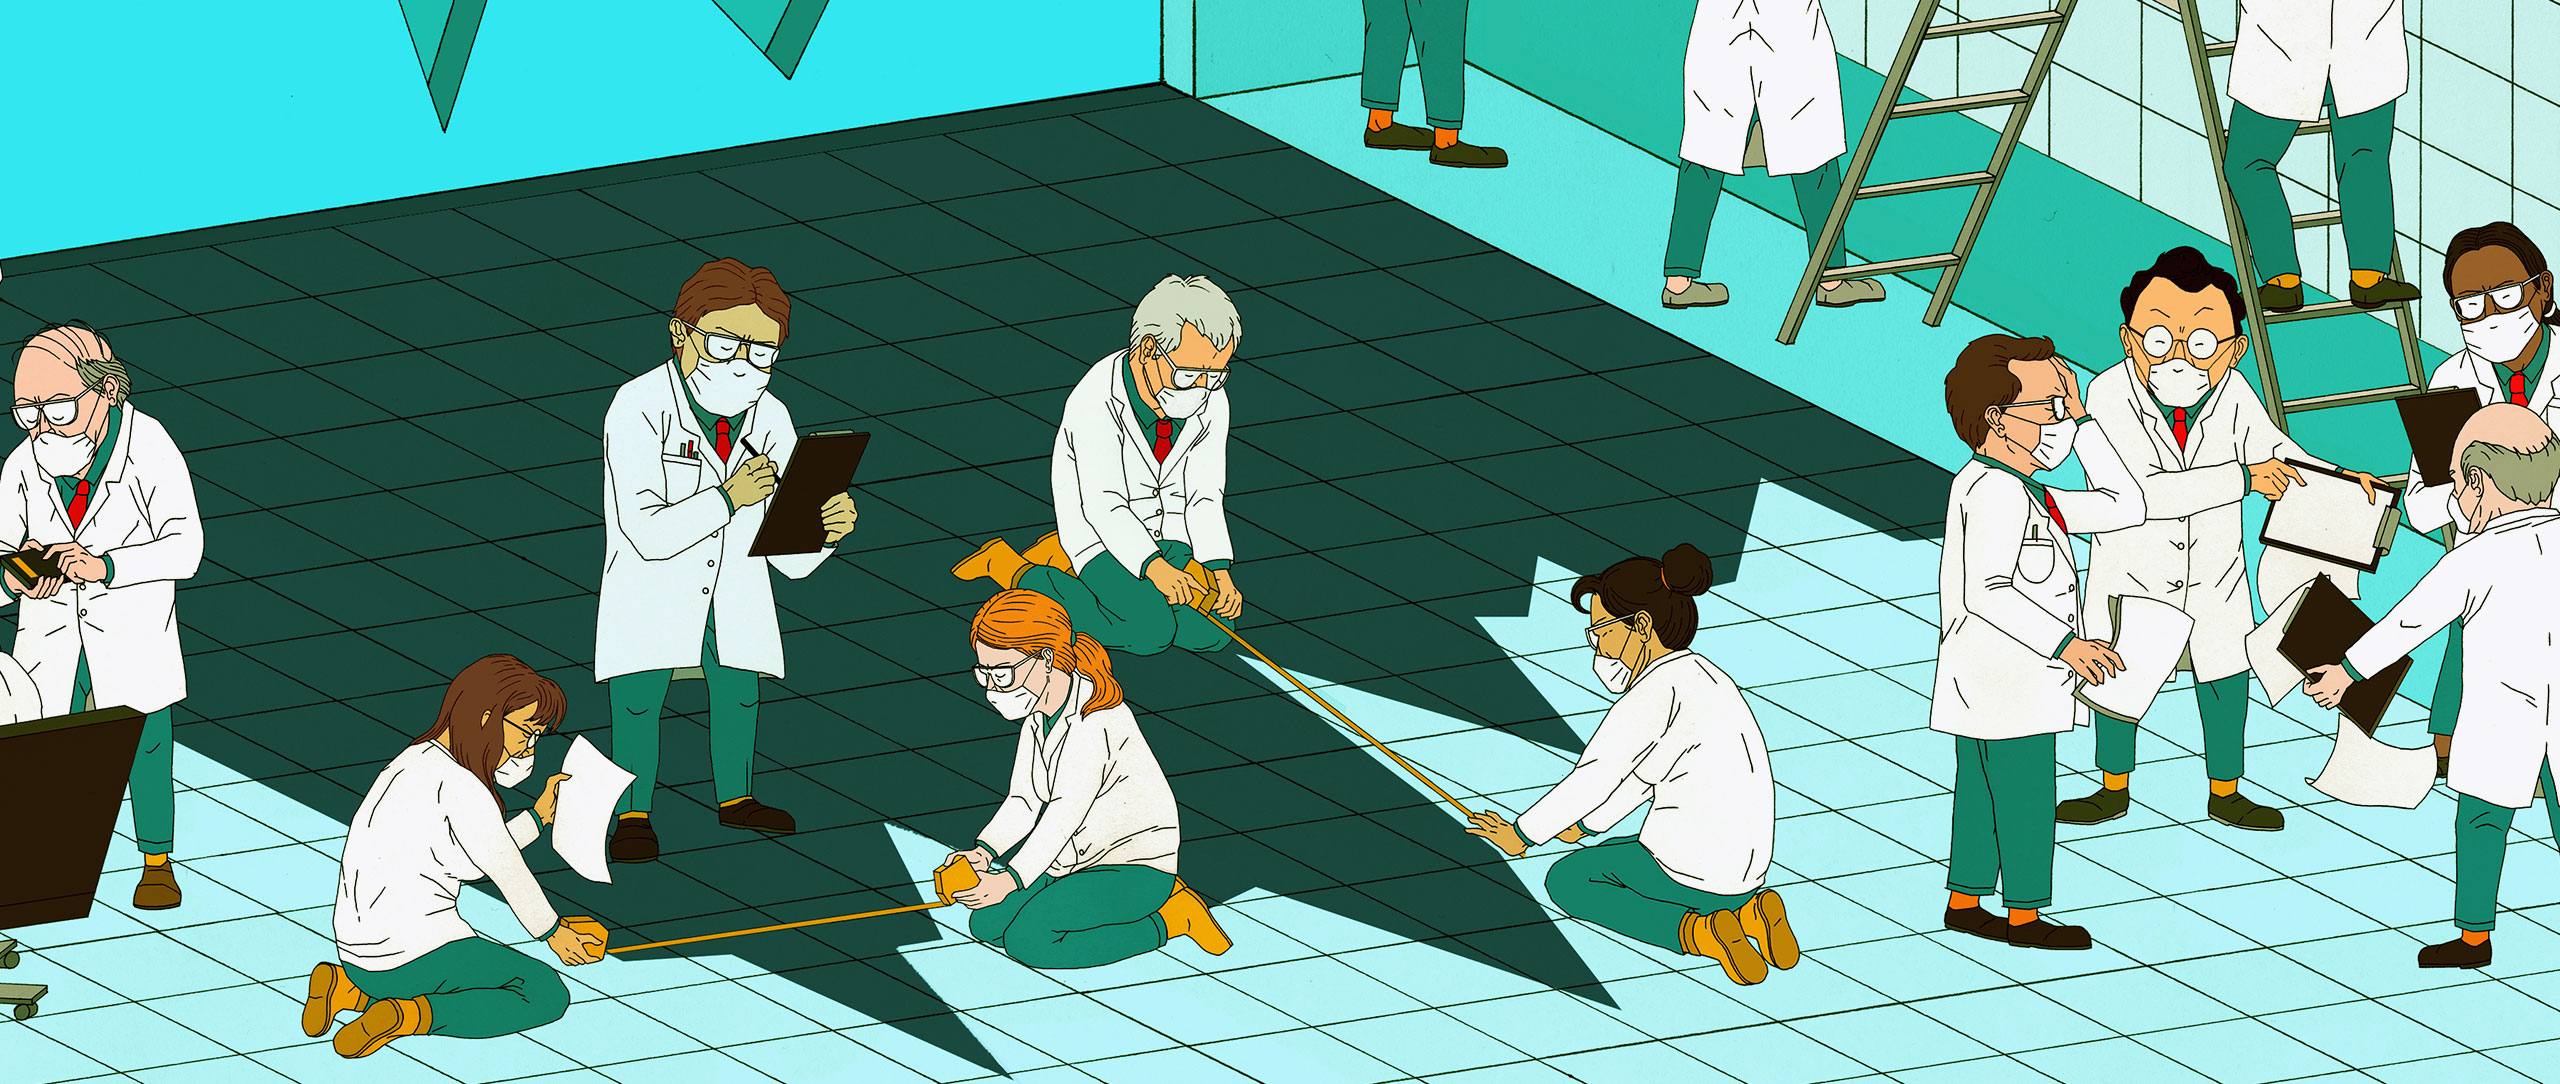 Illustration of researchers trying to reconstruct the shape of an epidemic curve from its distorted shadow on the floor.